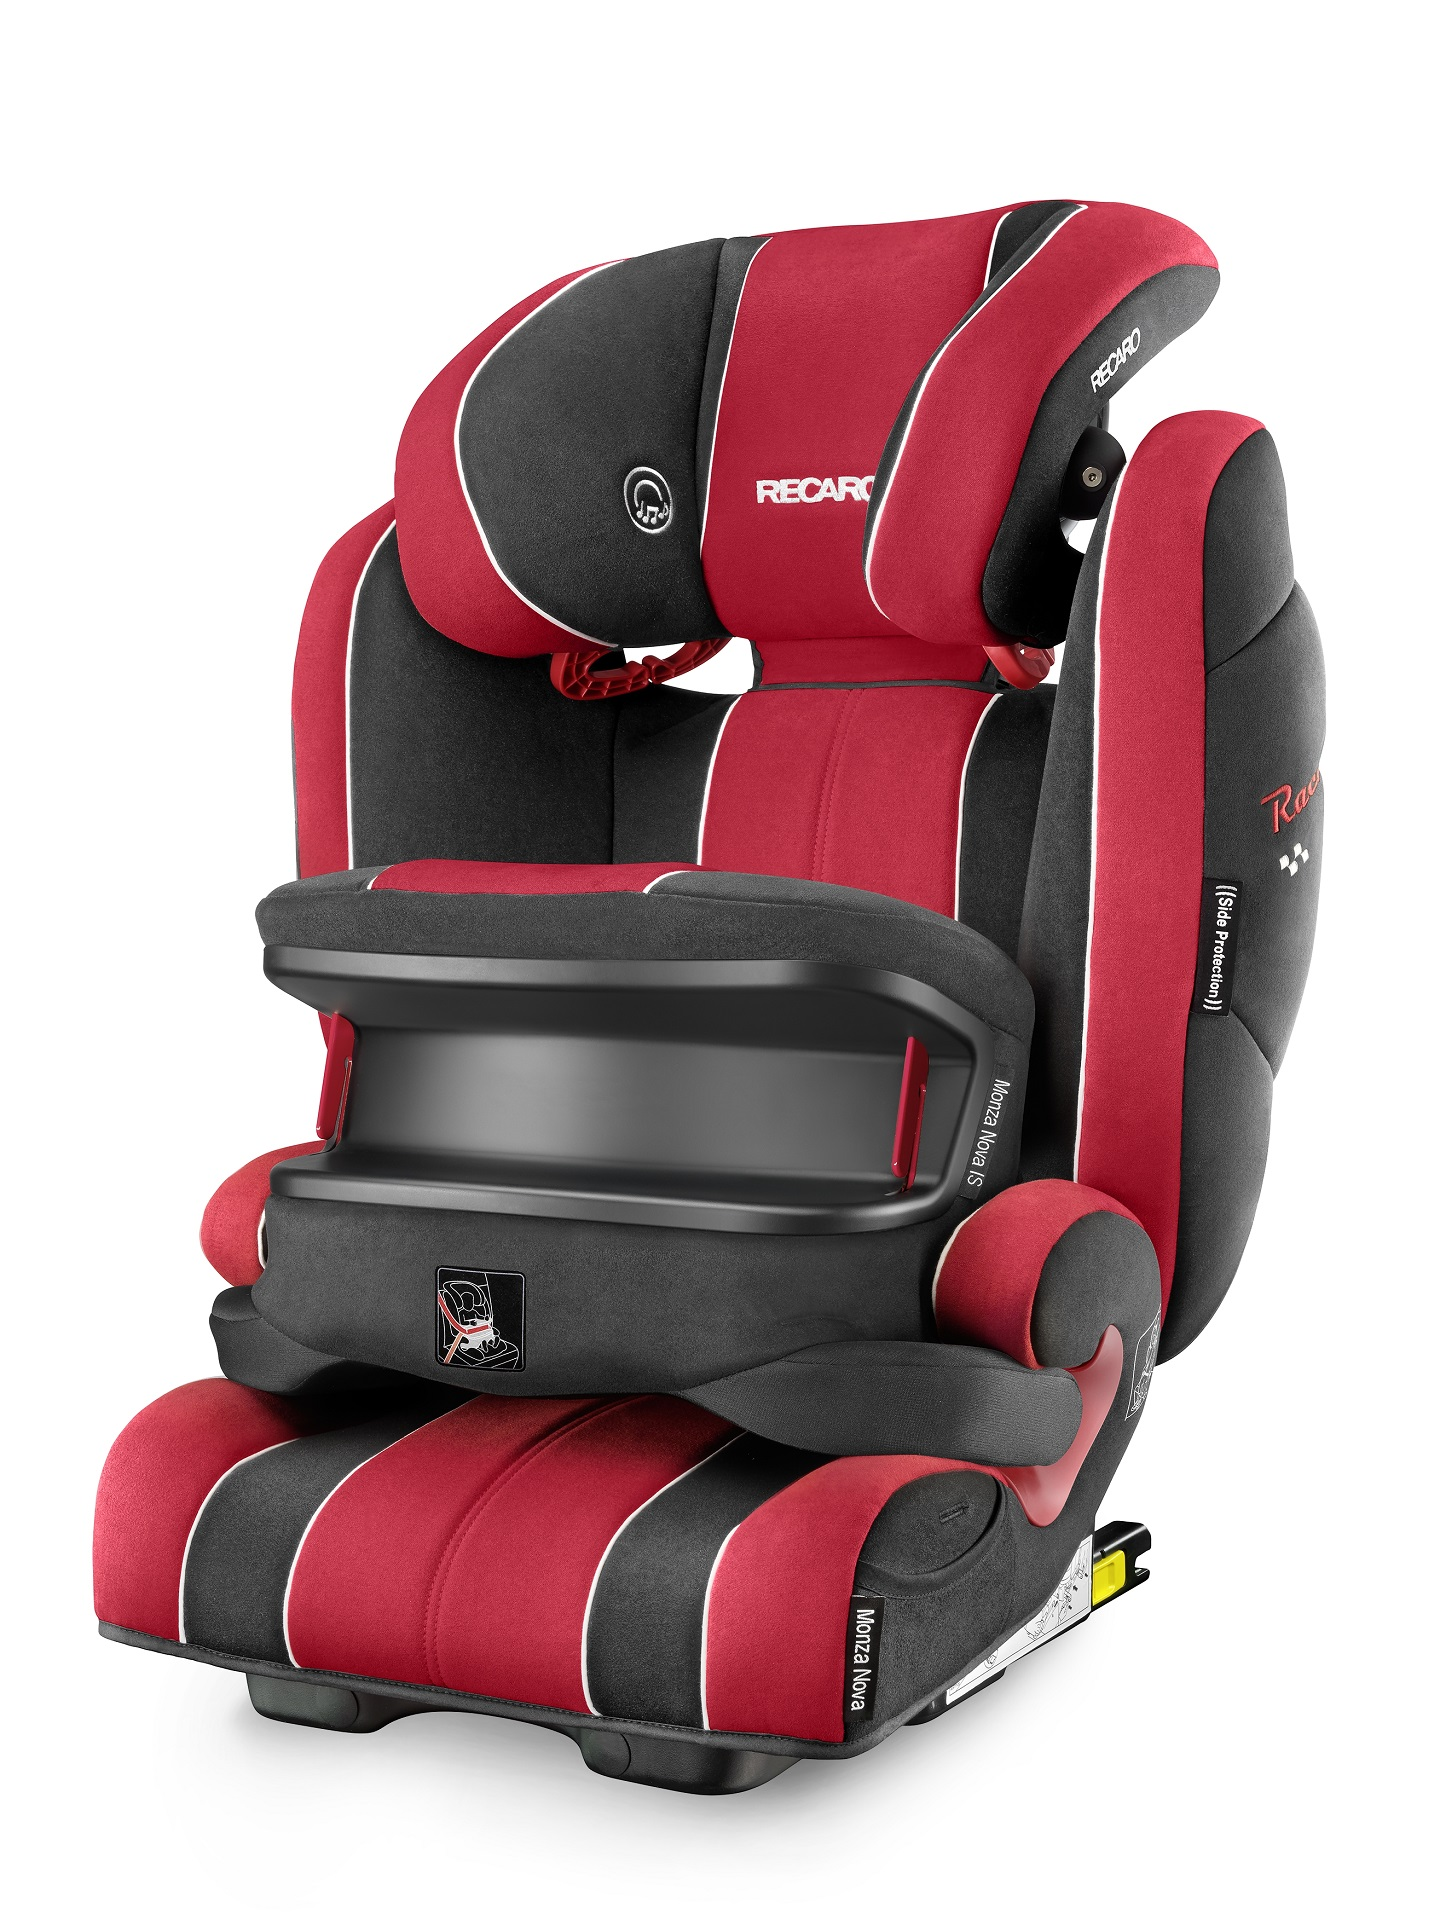 Recaro Child Car Sear Monza Nova IS Seatfix Racing Edition 2018